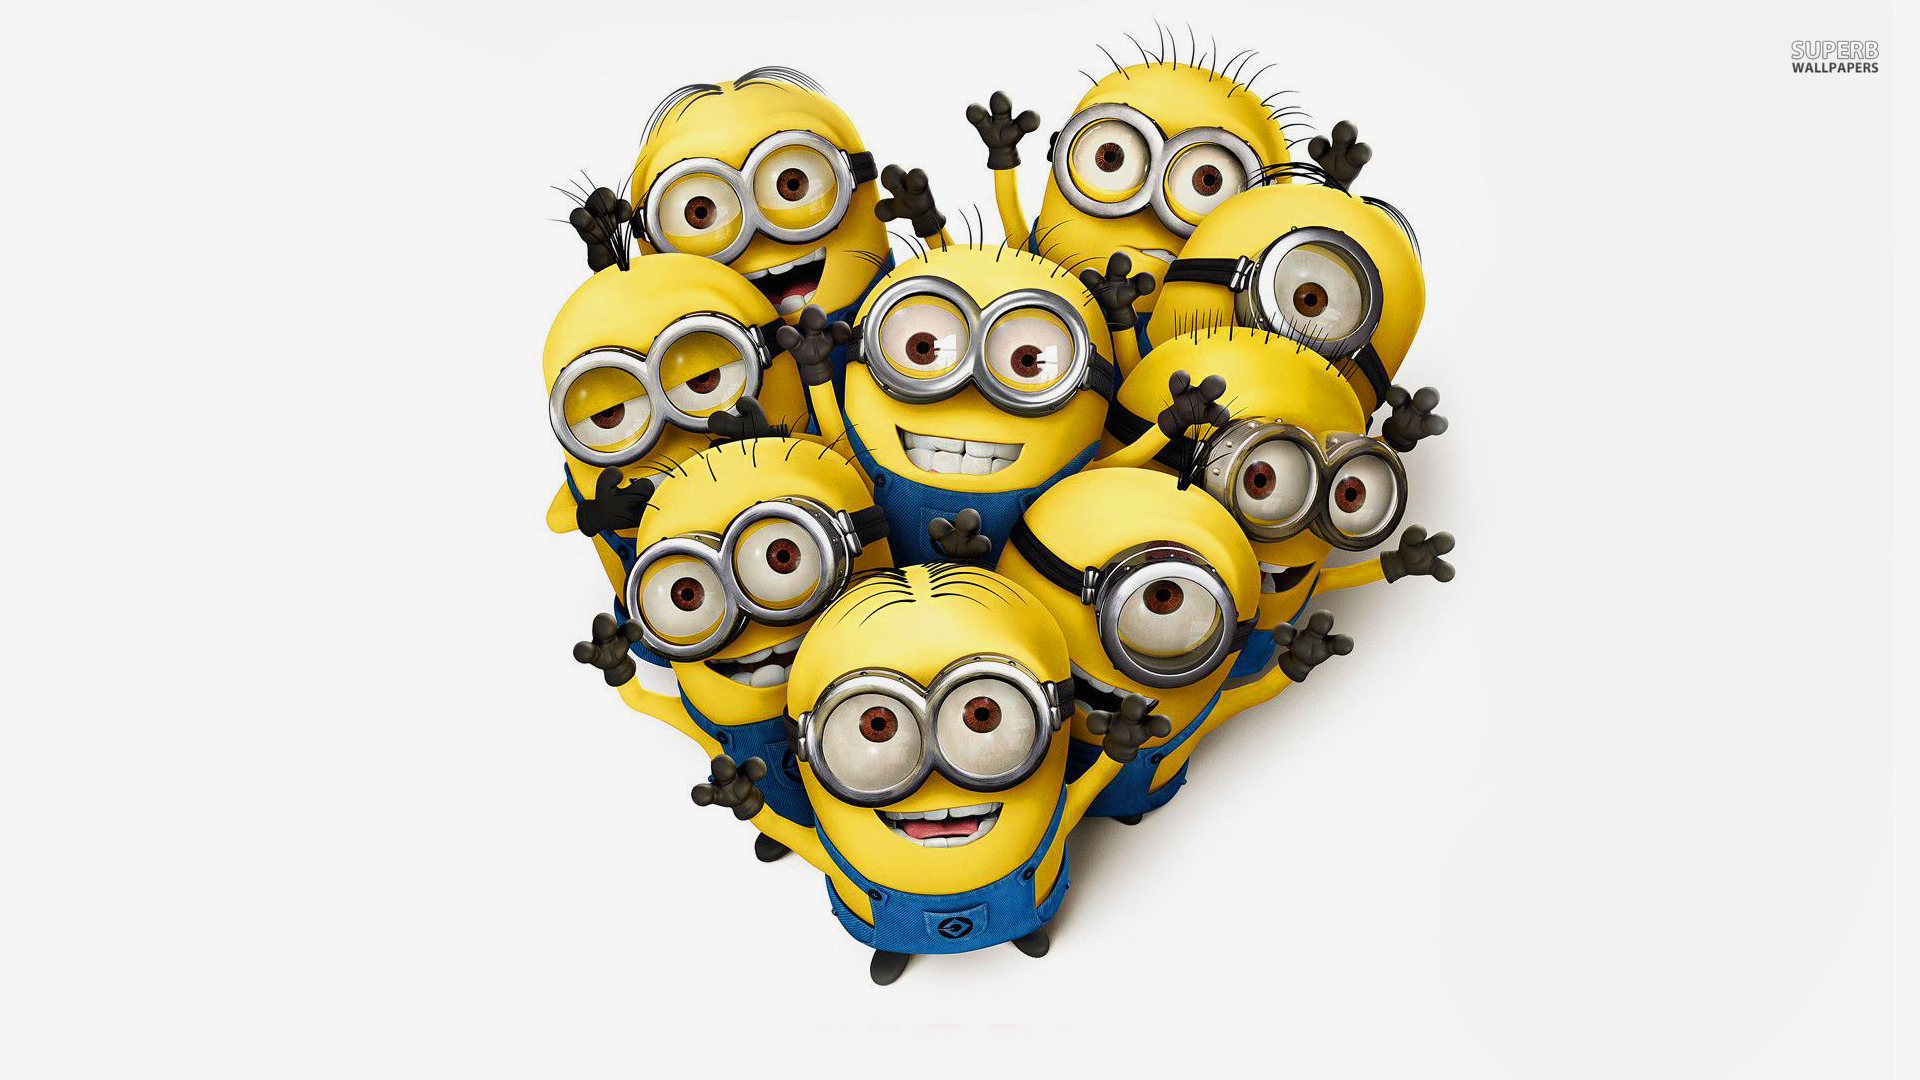 Despicable-Me-Minion-Page-1920%C3%971080-Despicable-Me-Minion-Ad-wallpaper-wpc5804087